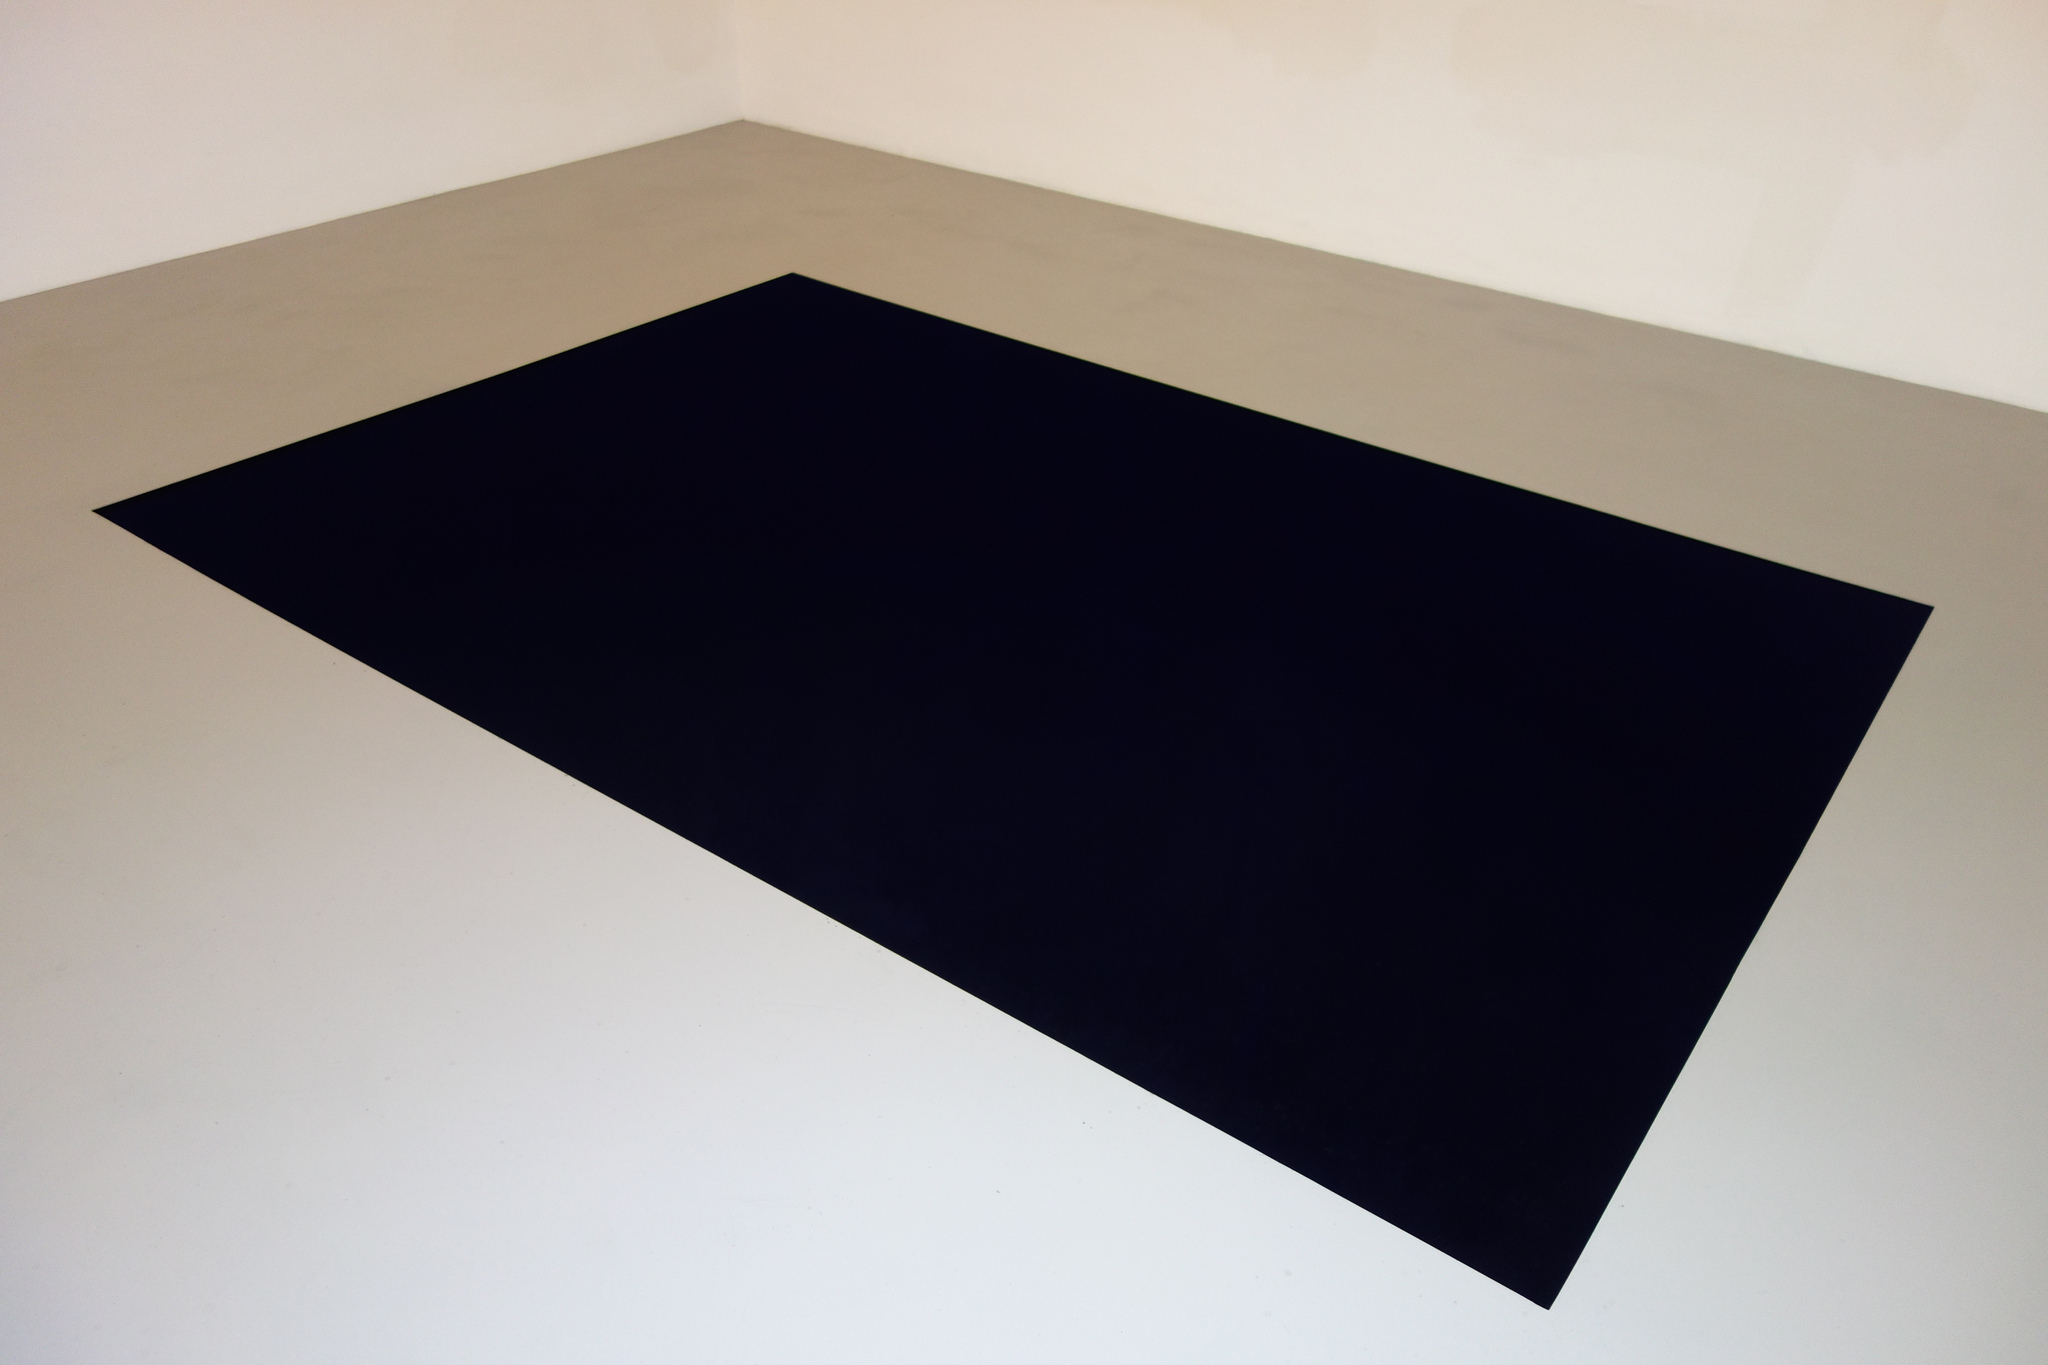 anish kapoor - dark brother